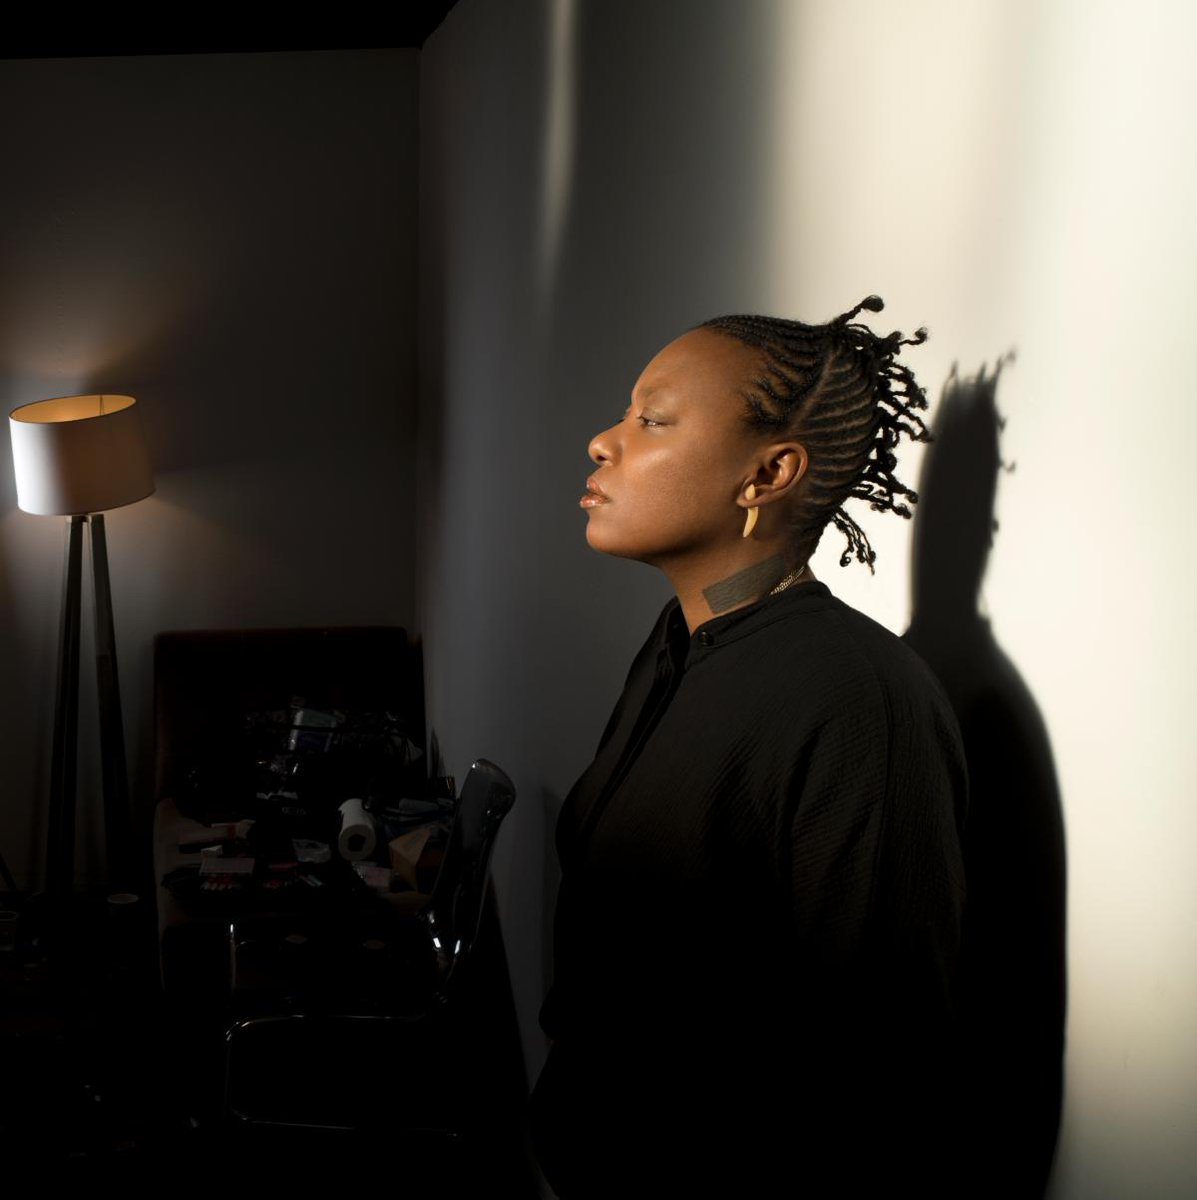 Don't miss bassist, singer-songwriter, Meshell Ndegeocello (@OfficialMeshell) with special guest Hanna Benn (@HannaBenn) live at The Heights Theater Saturday, January 19th! Grab your tickets today! http://ow.ly/h2Ax30n2mLU #theheightstheater #houstonheights